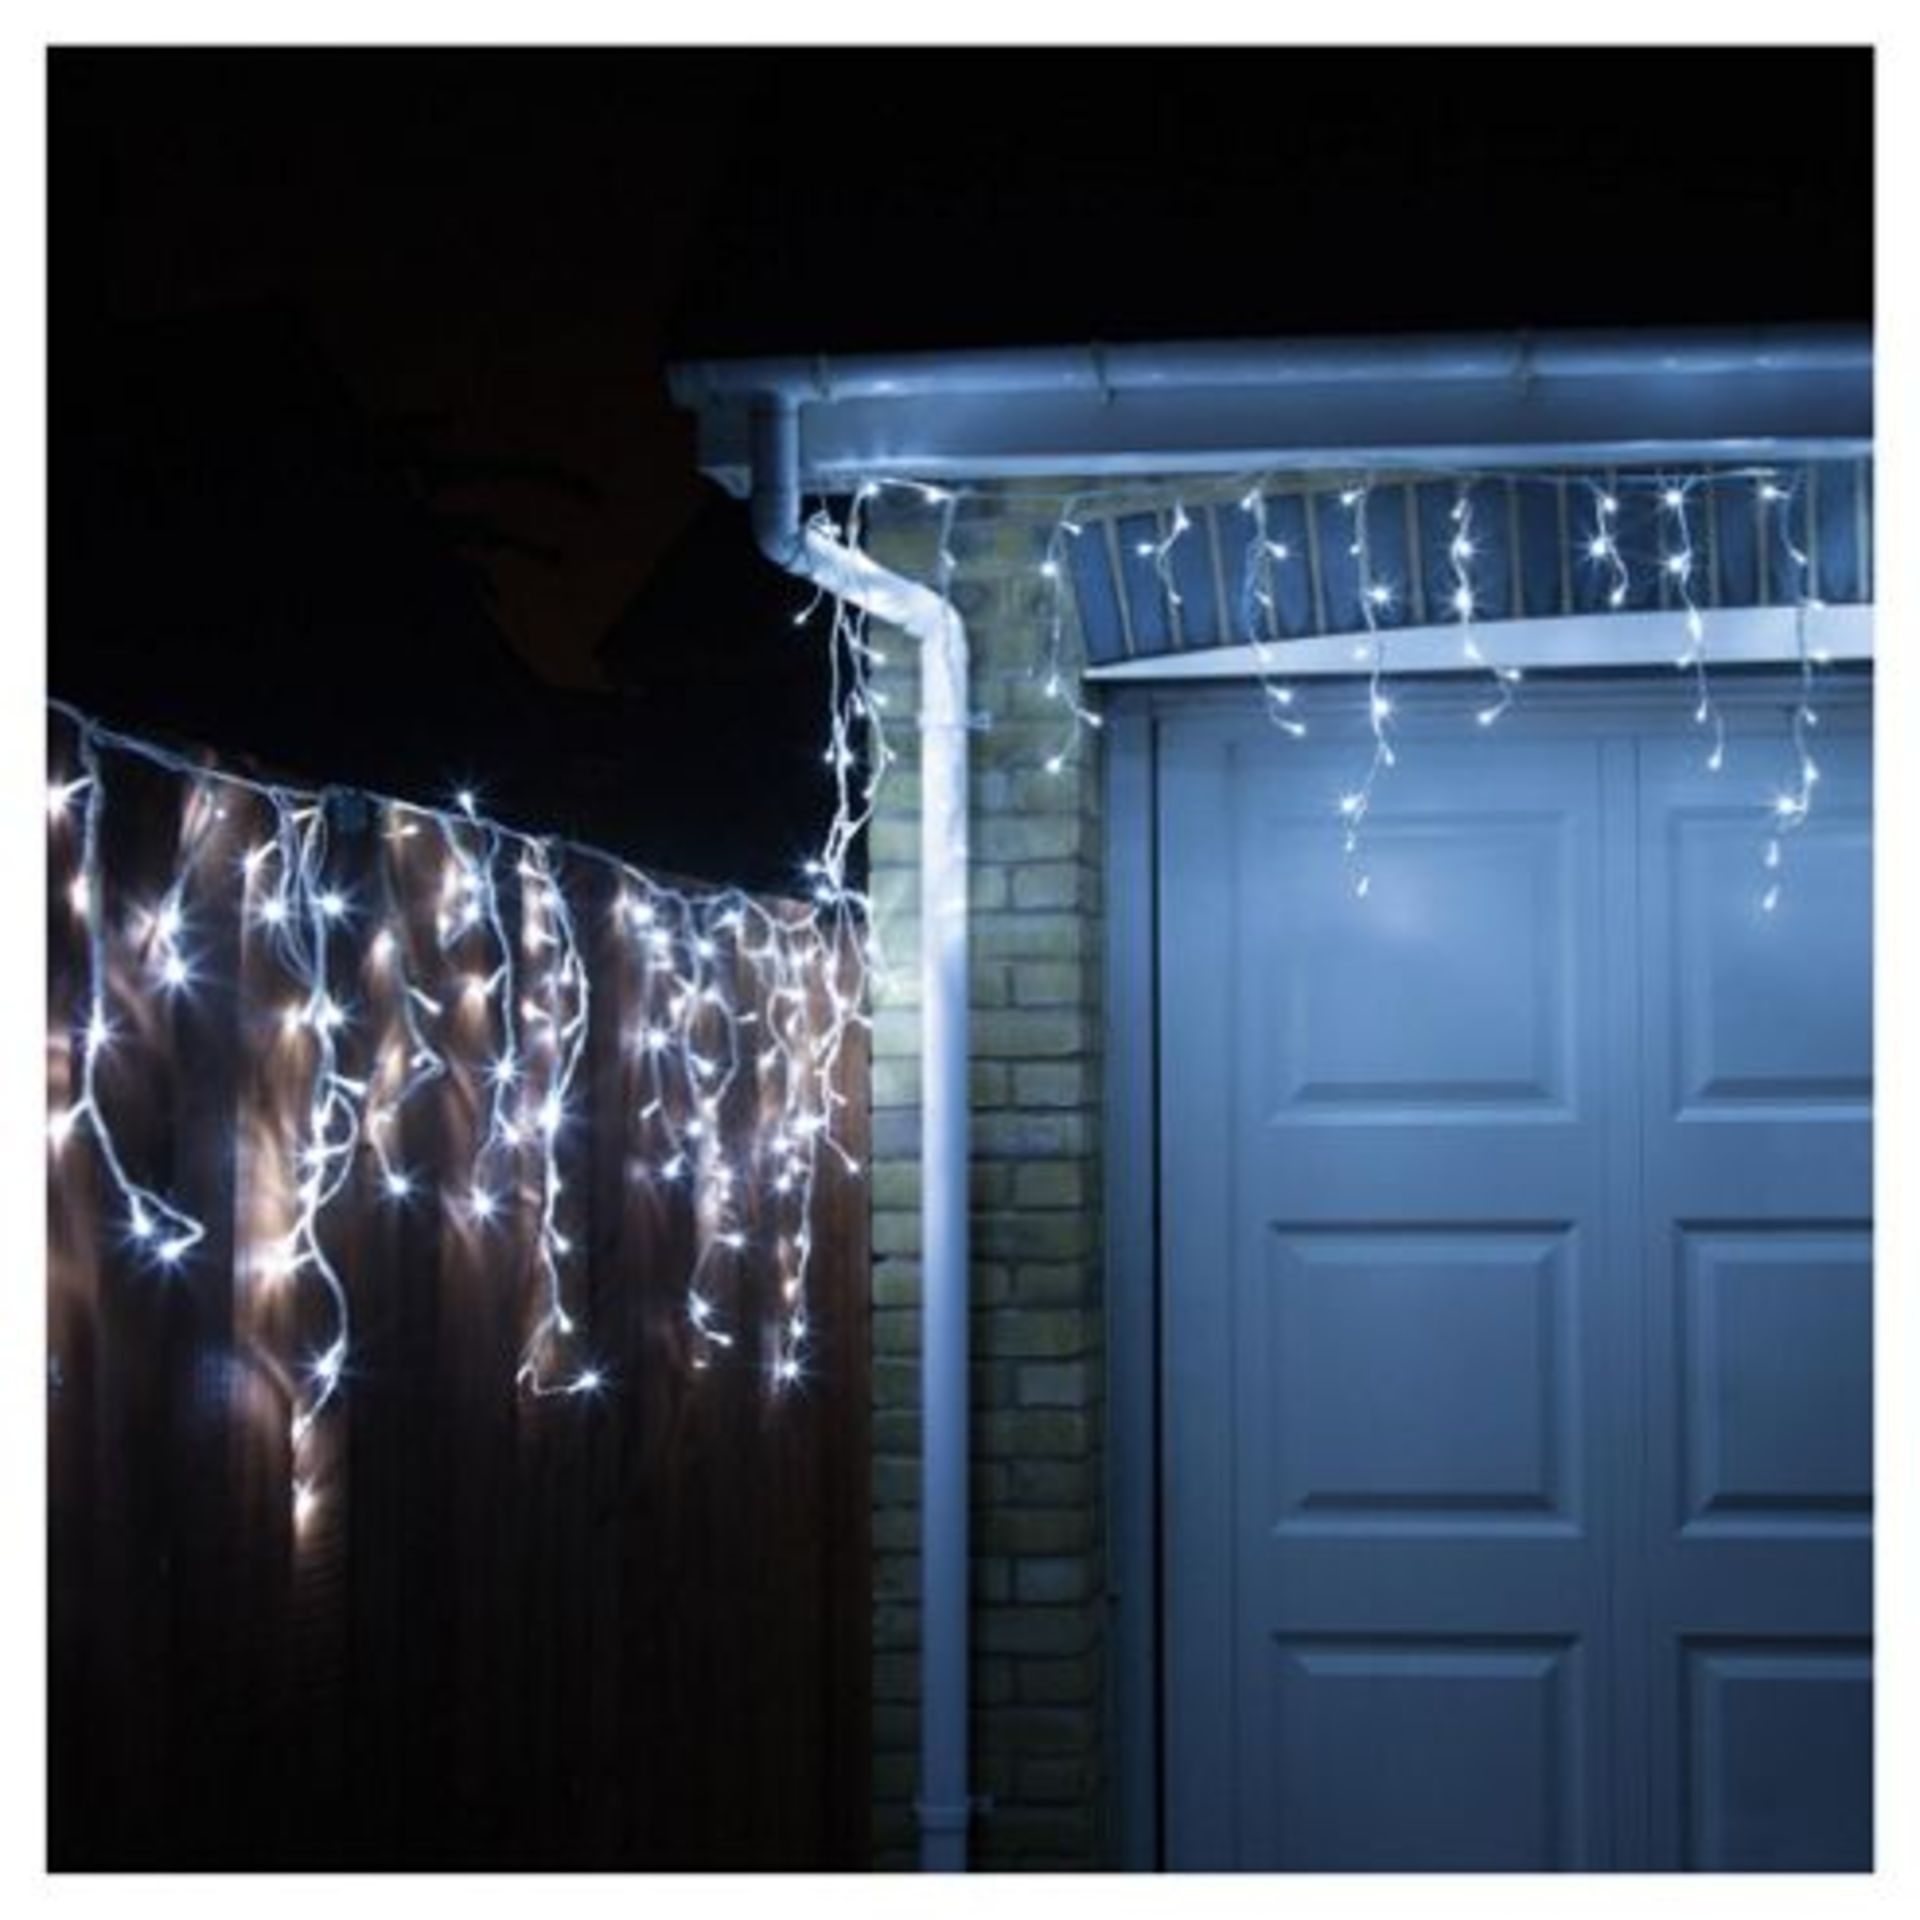 Lot 18210 - V Brand New 480 Snowing Icicle White/Blue LED Lights With 8 Functions And Continuous Snowing